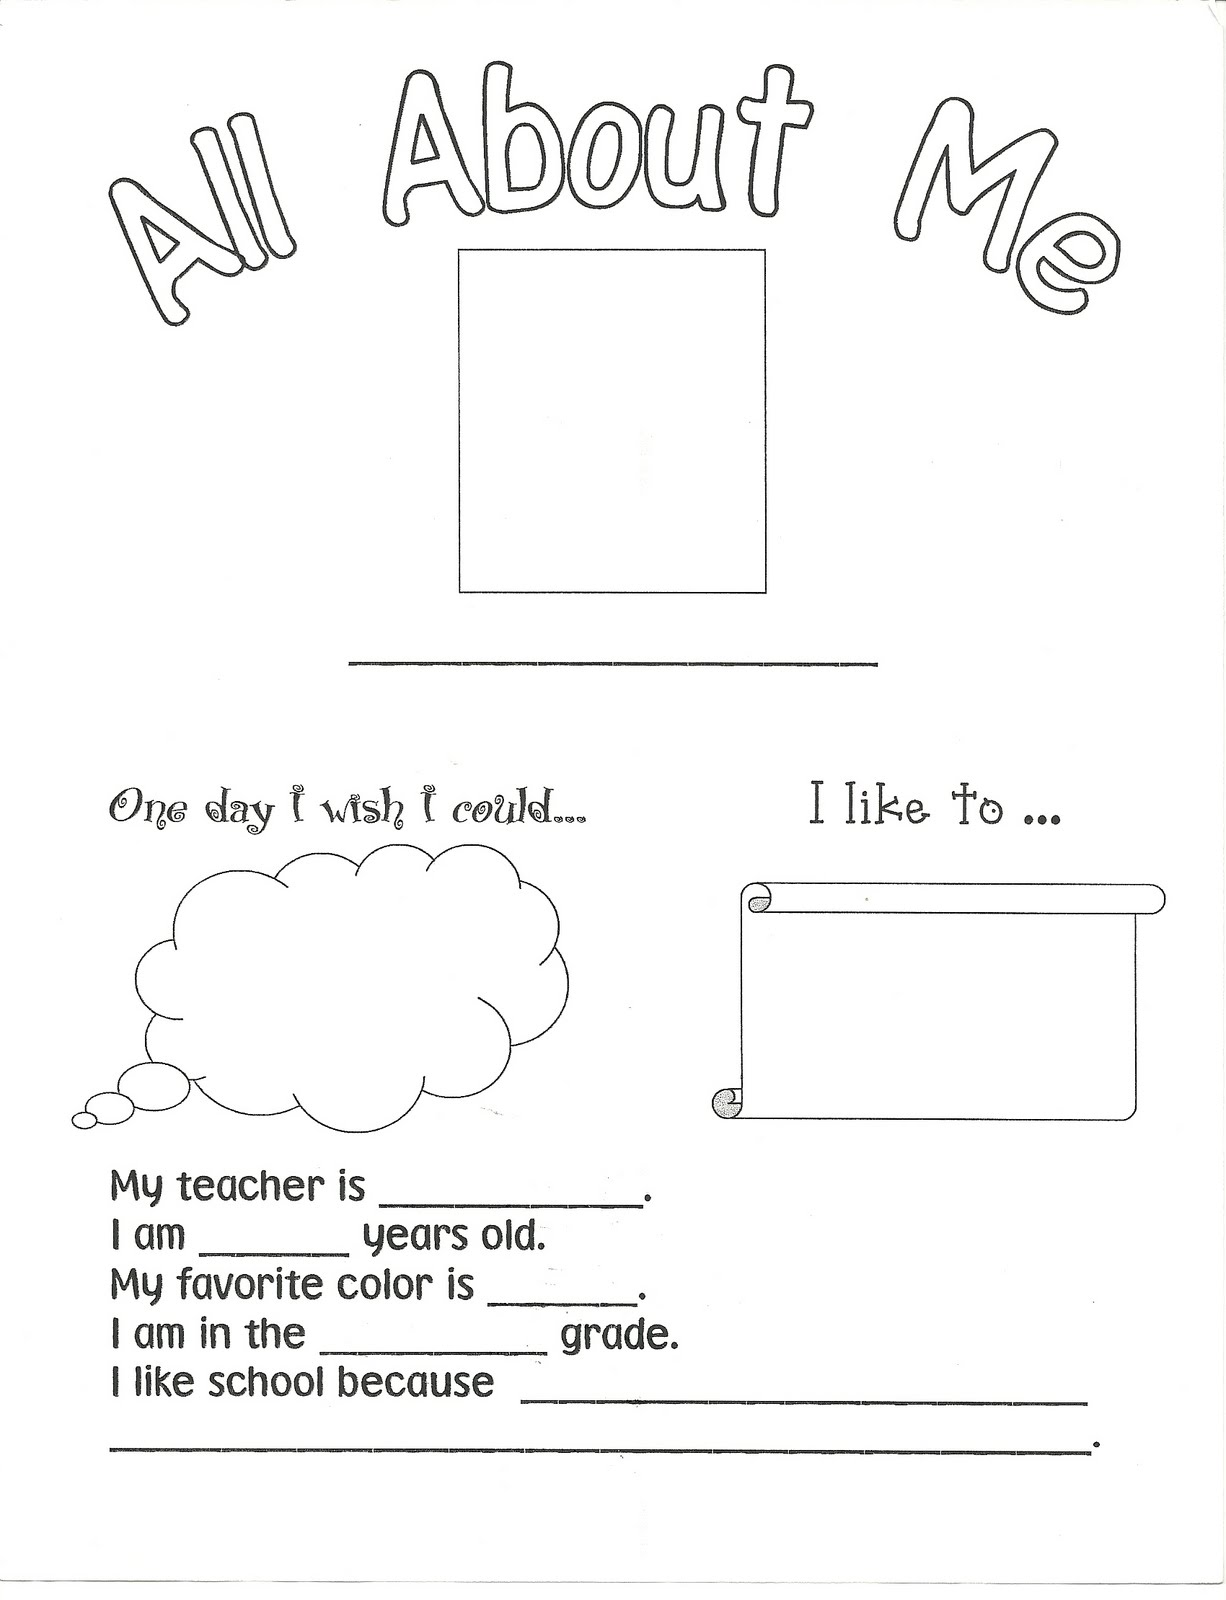 Child Centered Teaching All About Me